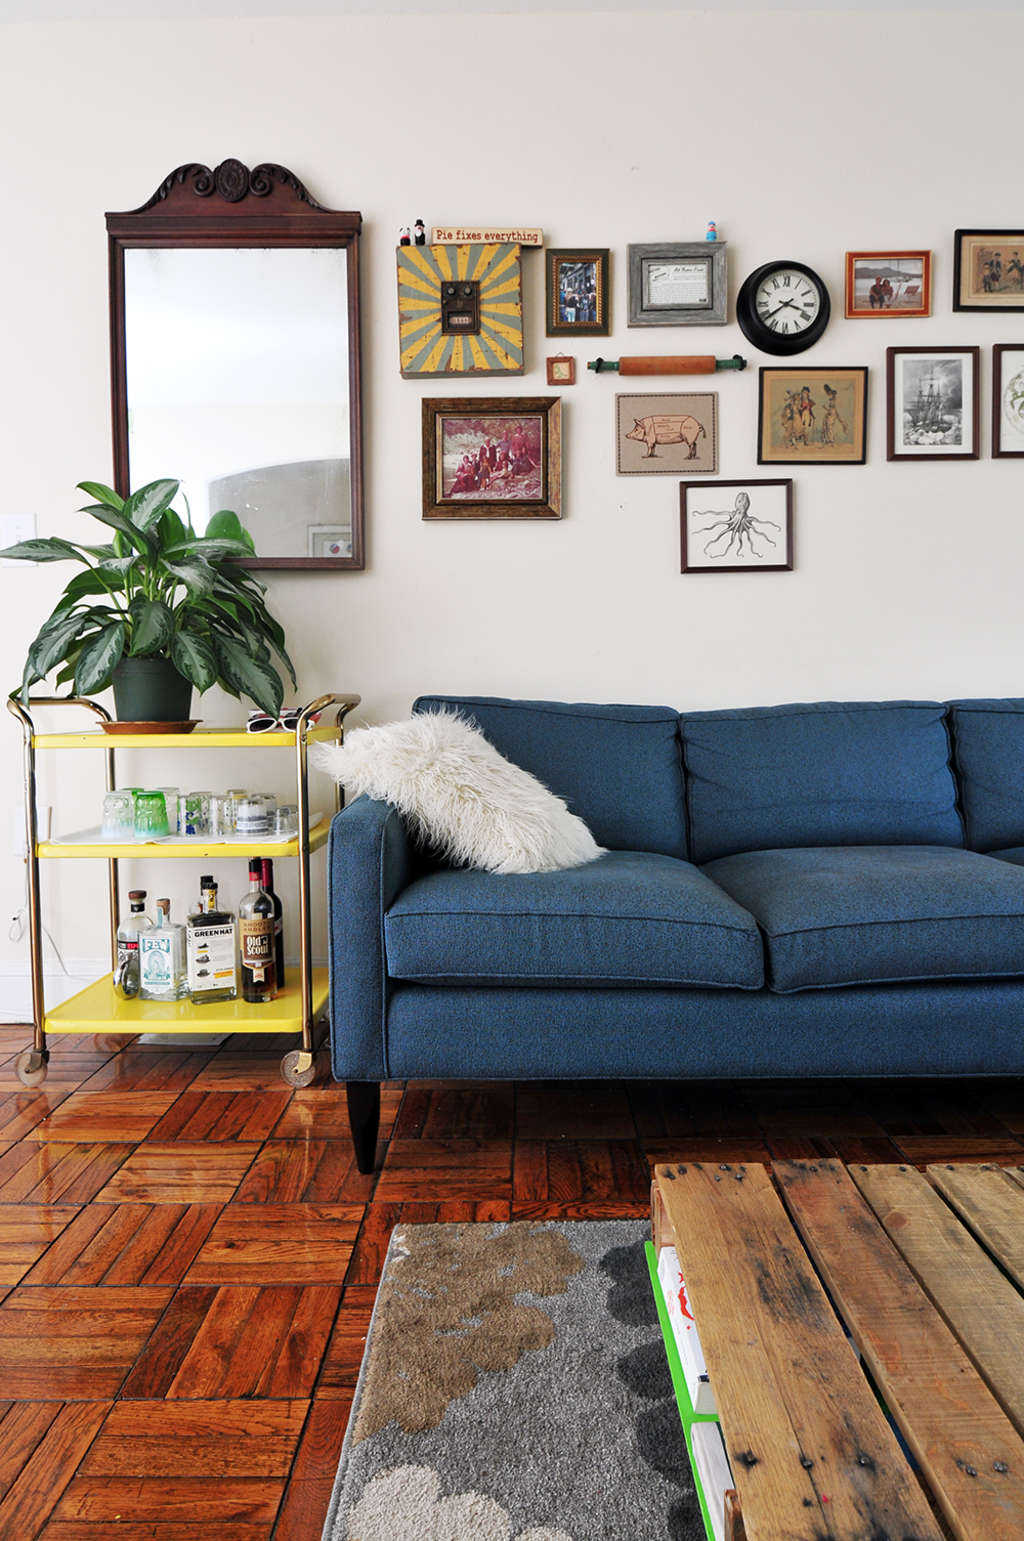 The Ultimate Guide To Wall Art 100 Favorite Tips Ideas